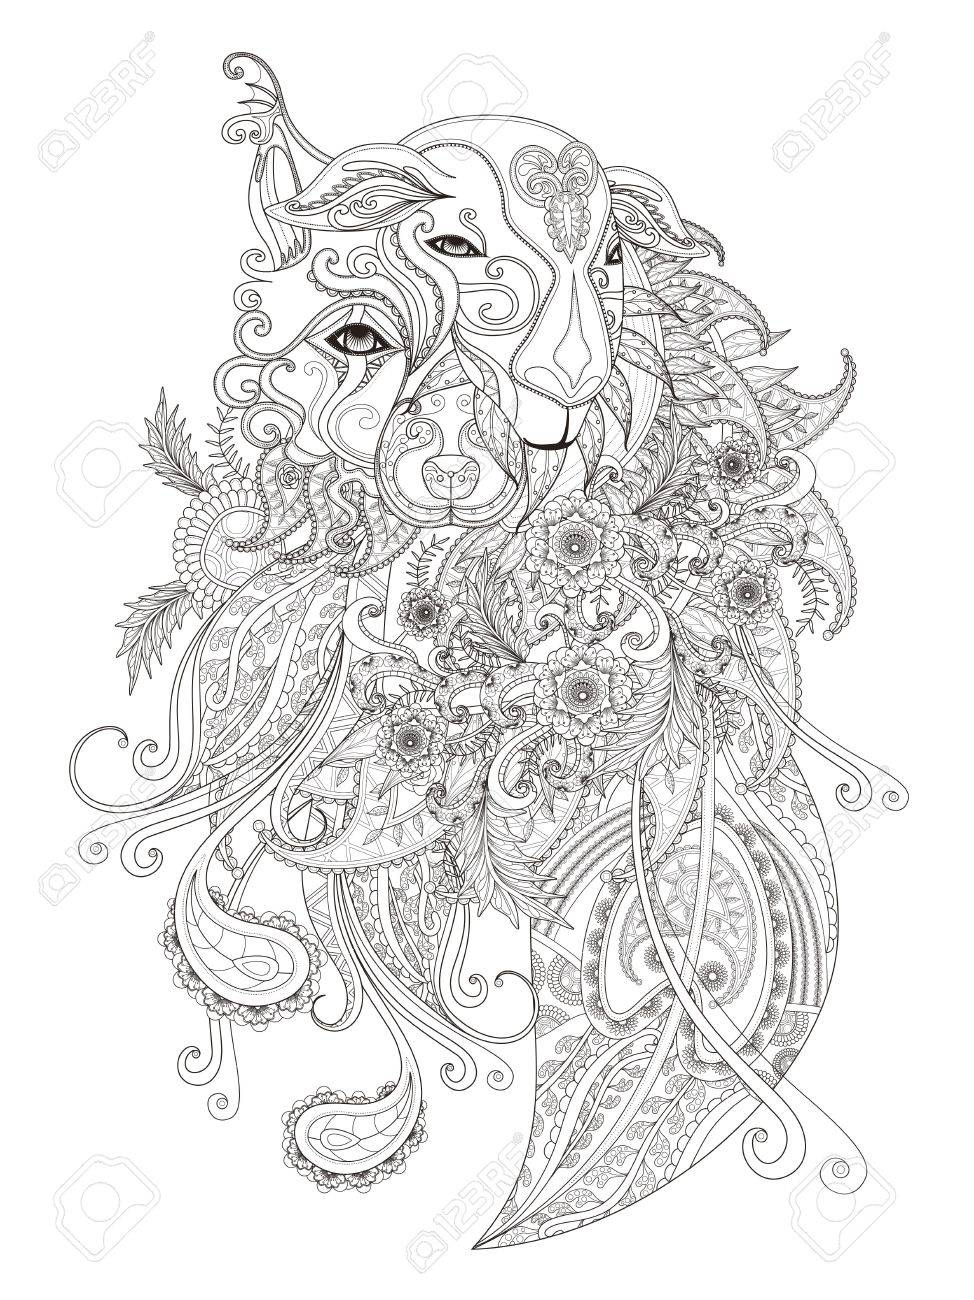 Coloring pages for stress relief - Fantastic Adult Coloring Page Combination Of Sheep And Dog Or Wolf Decorative Floral Element